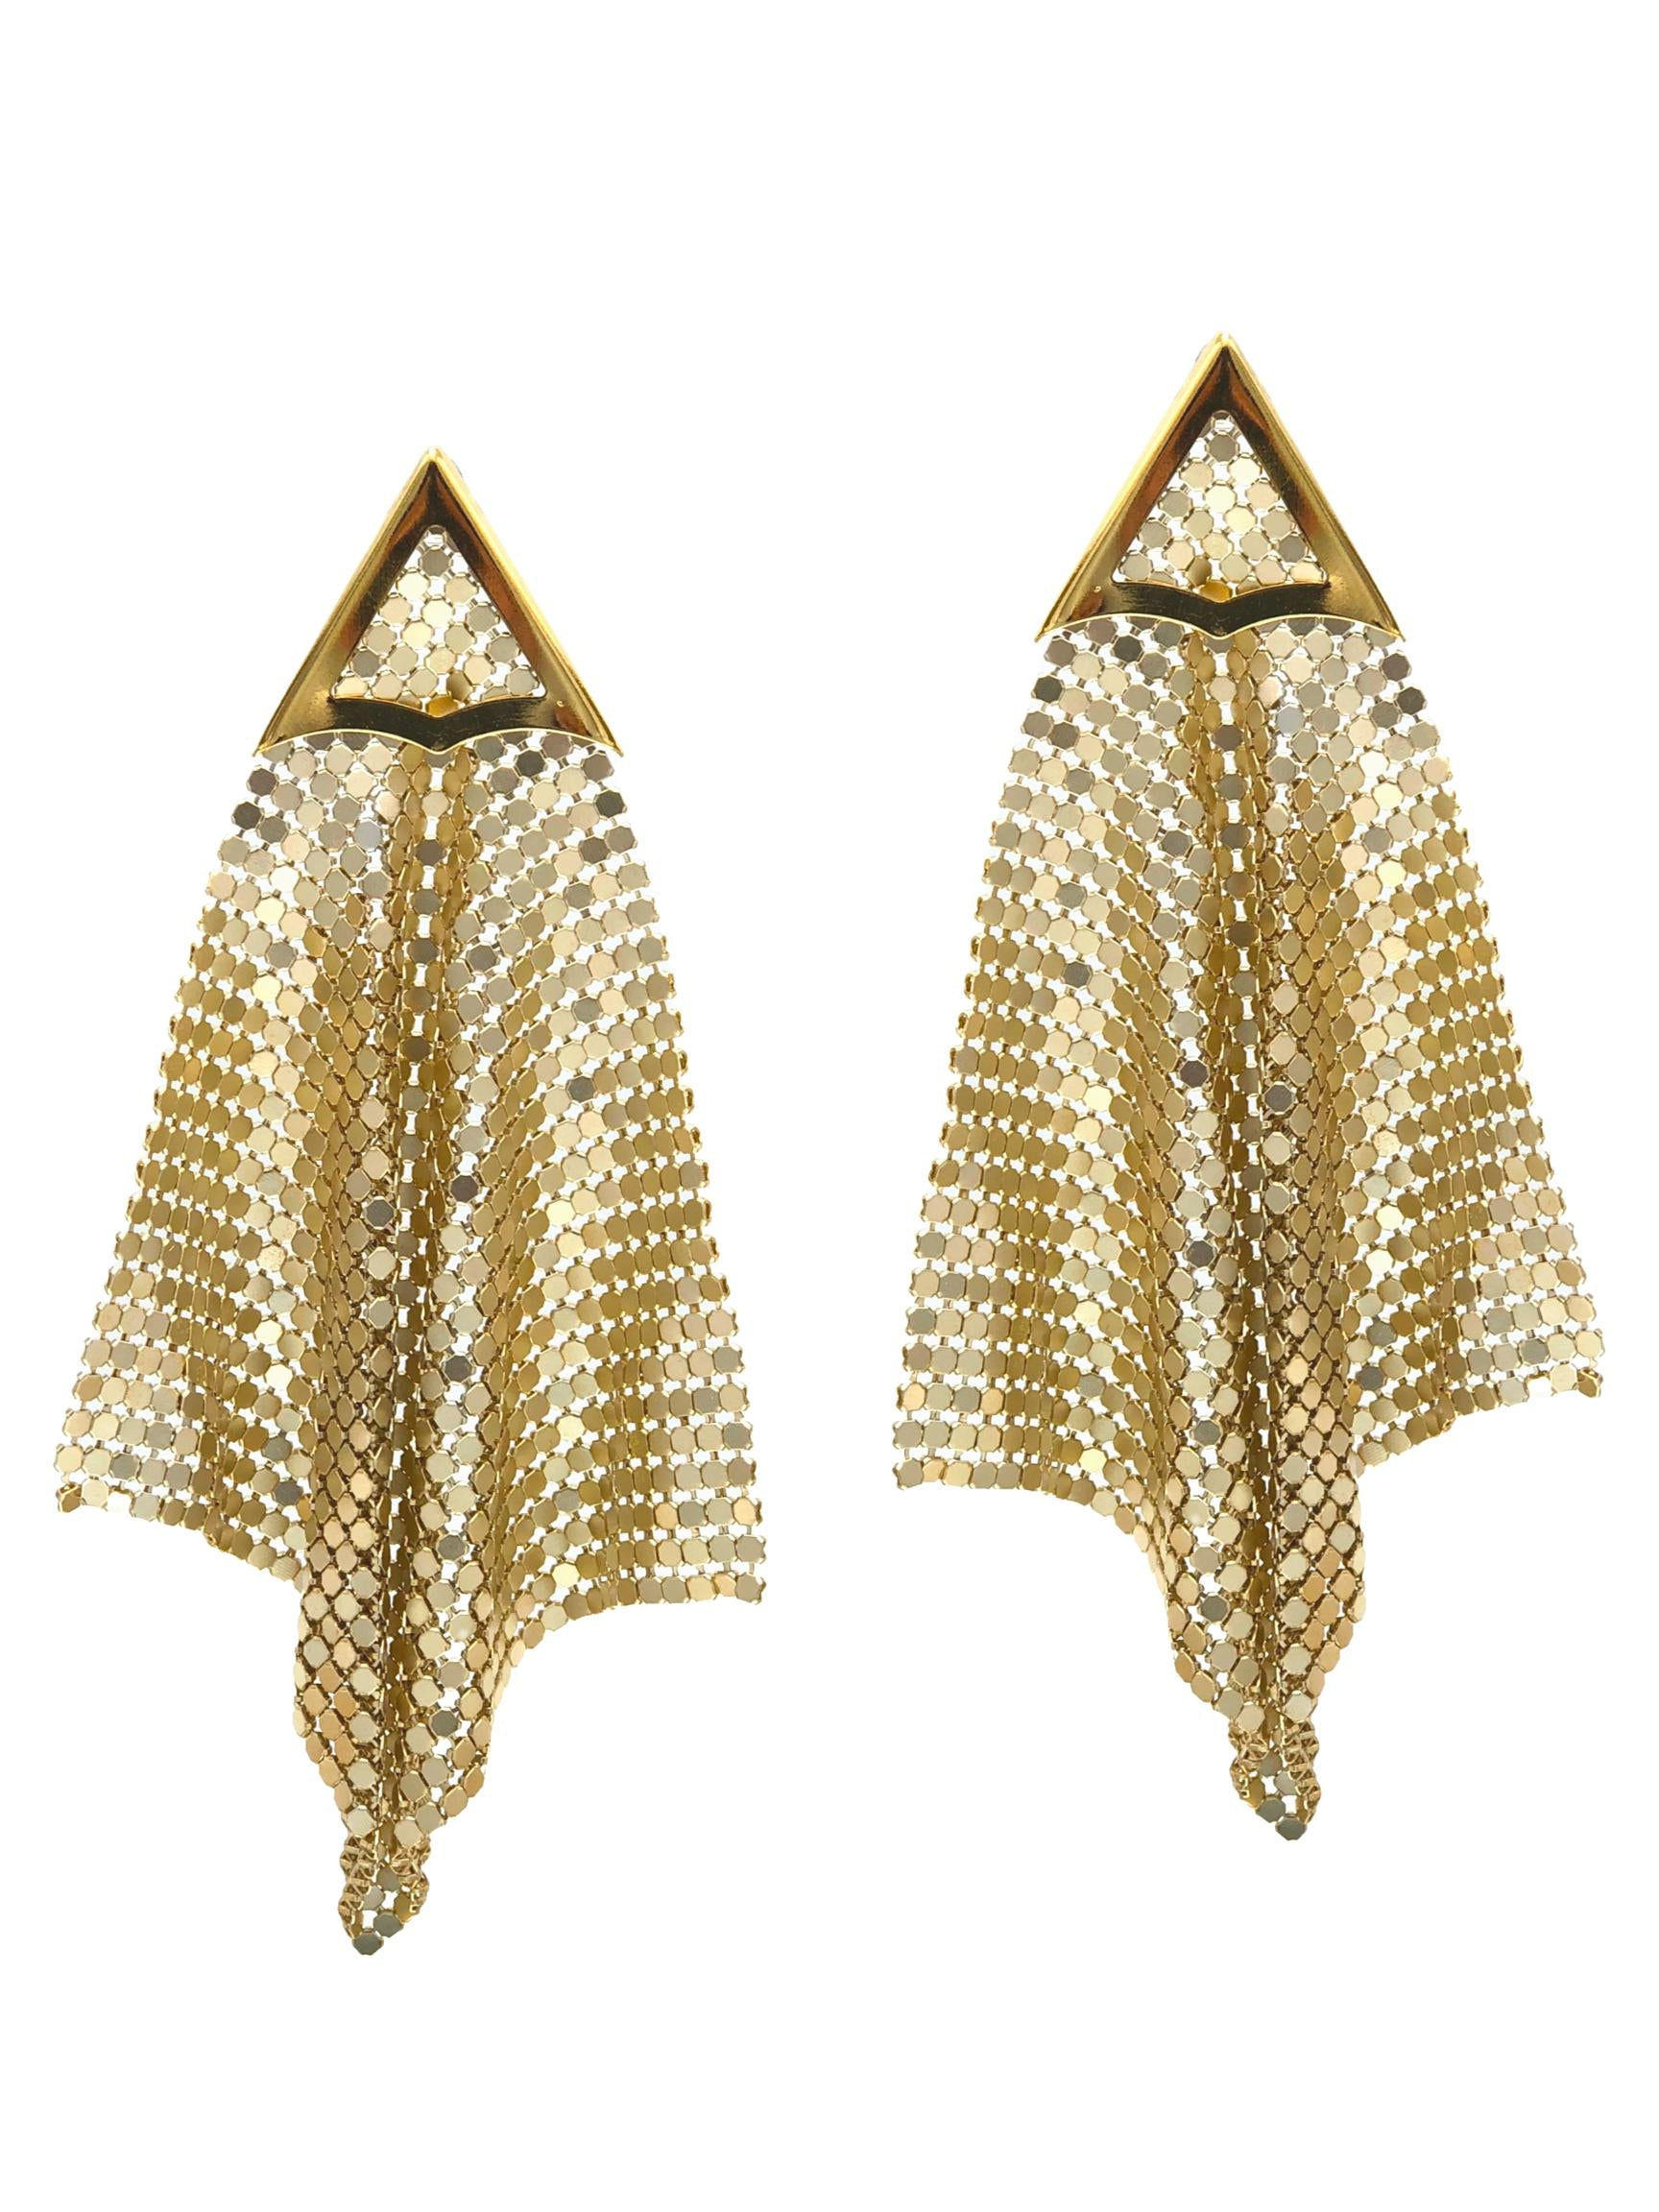 Fazzoletto Chainmail Gold Earrings-Earrings-JAREDJAMIN Jewelry Online-JAREDJAMIN - Fashion Jewelry & Accessories